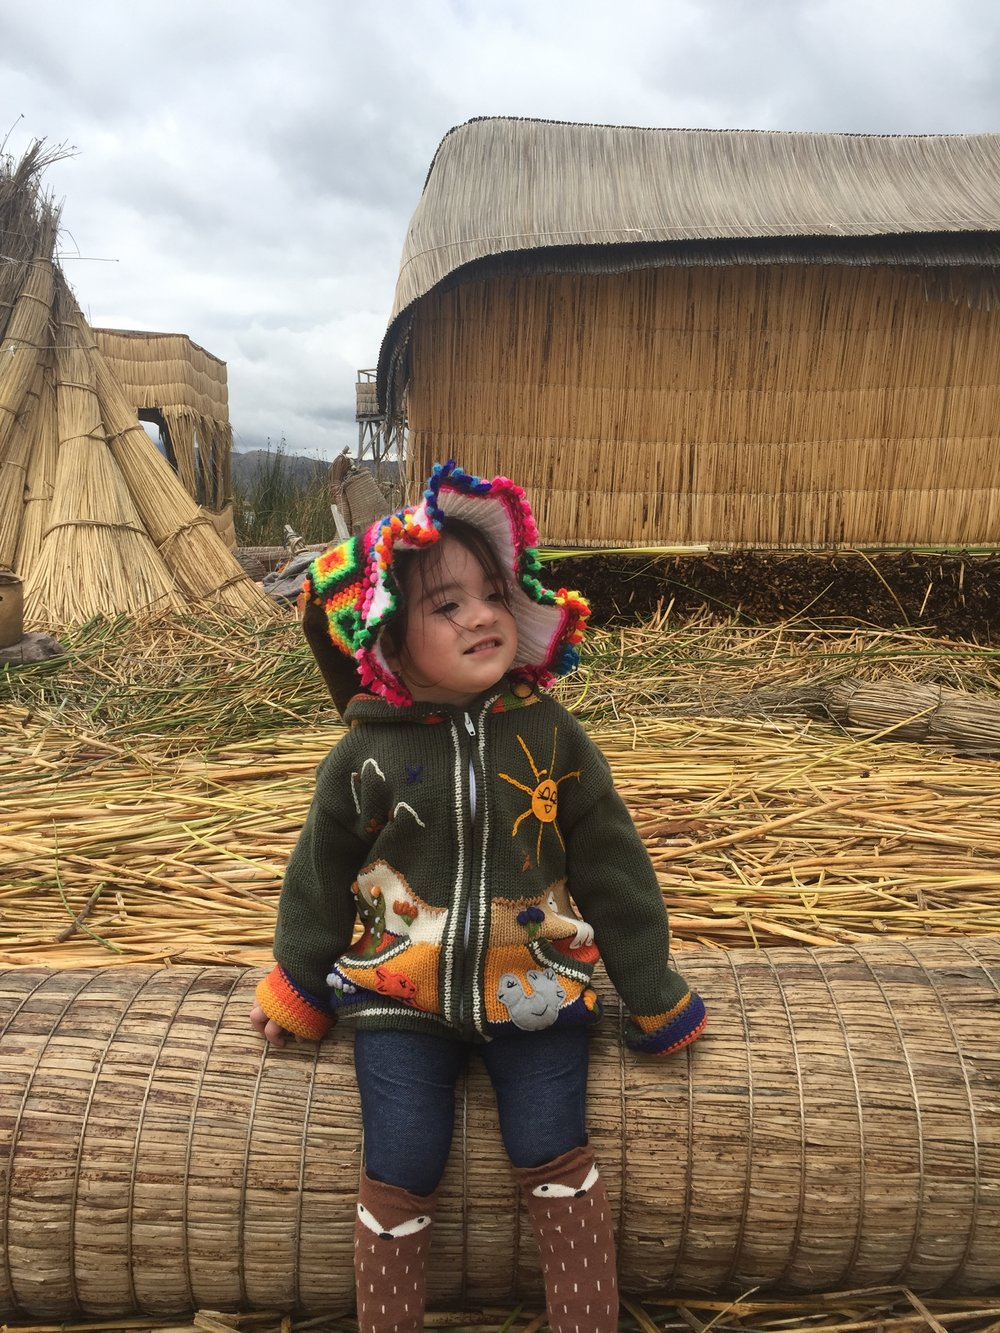 In the beautiful city of Puno, Peru during our family trip on March 2017